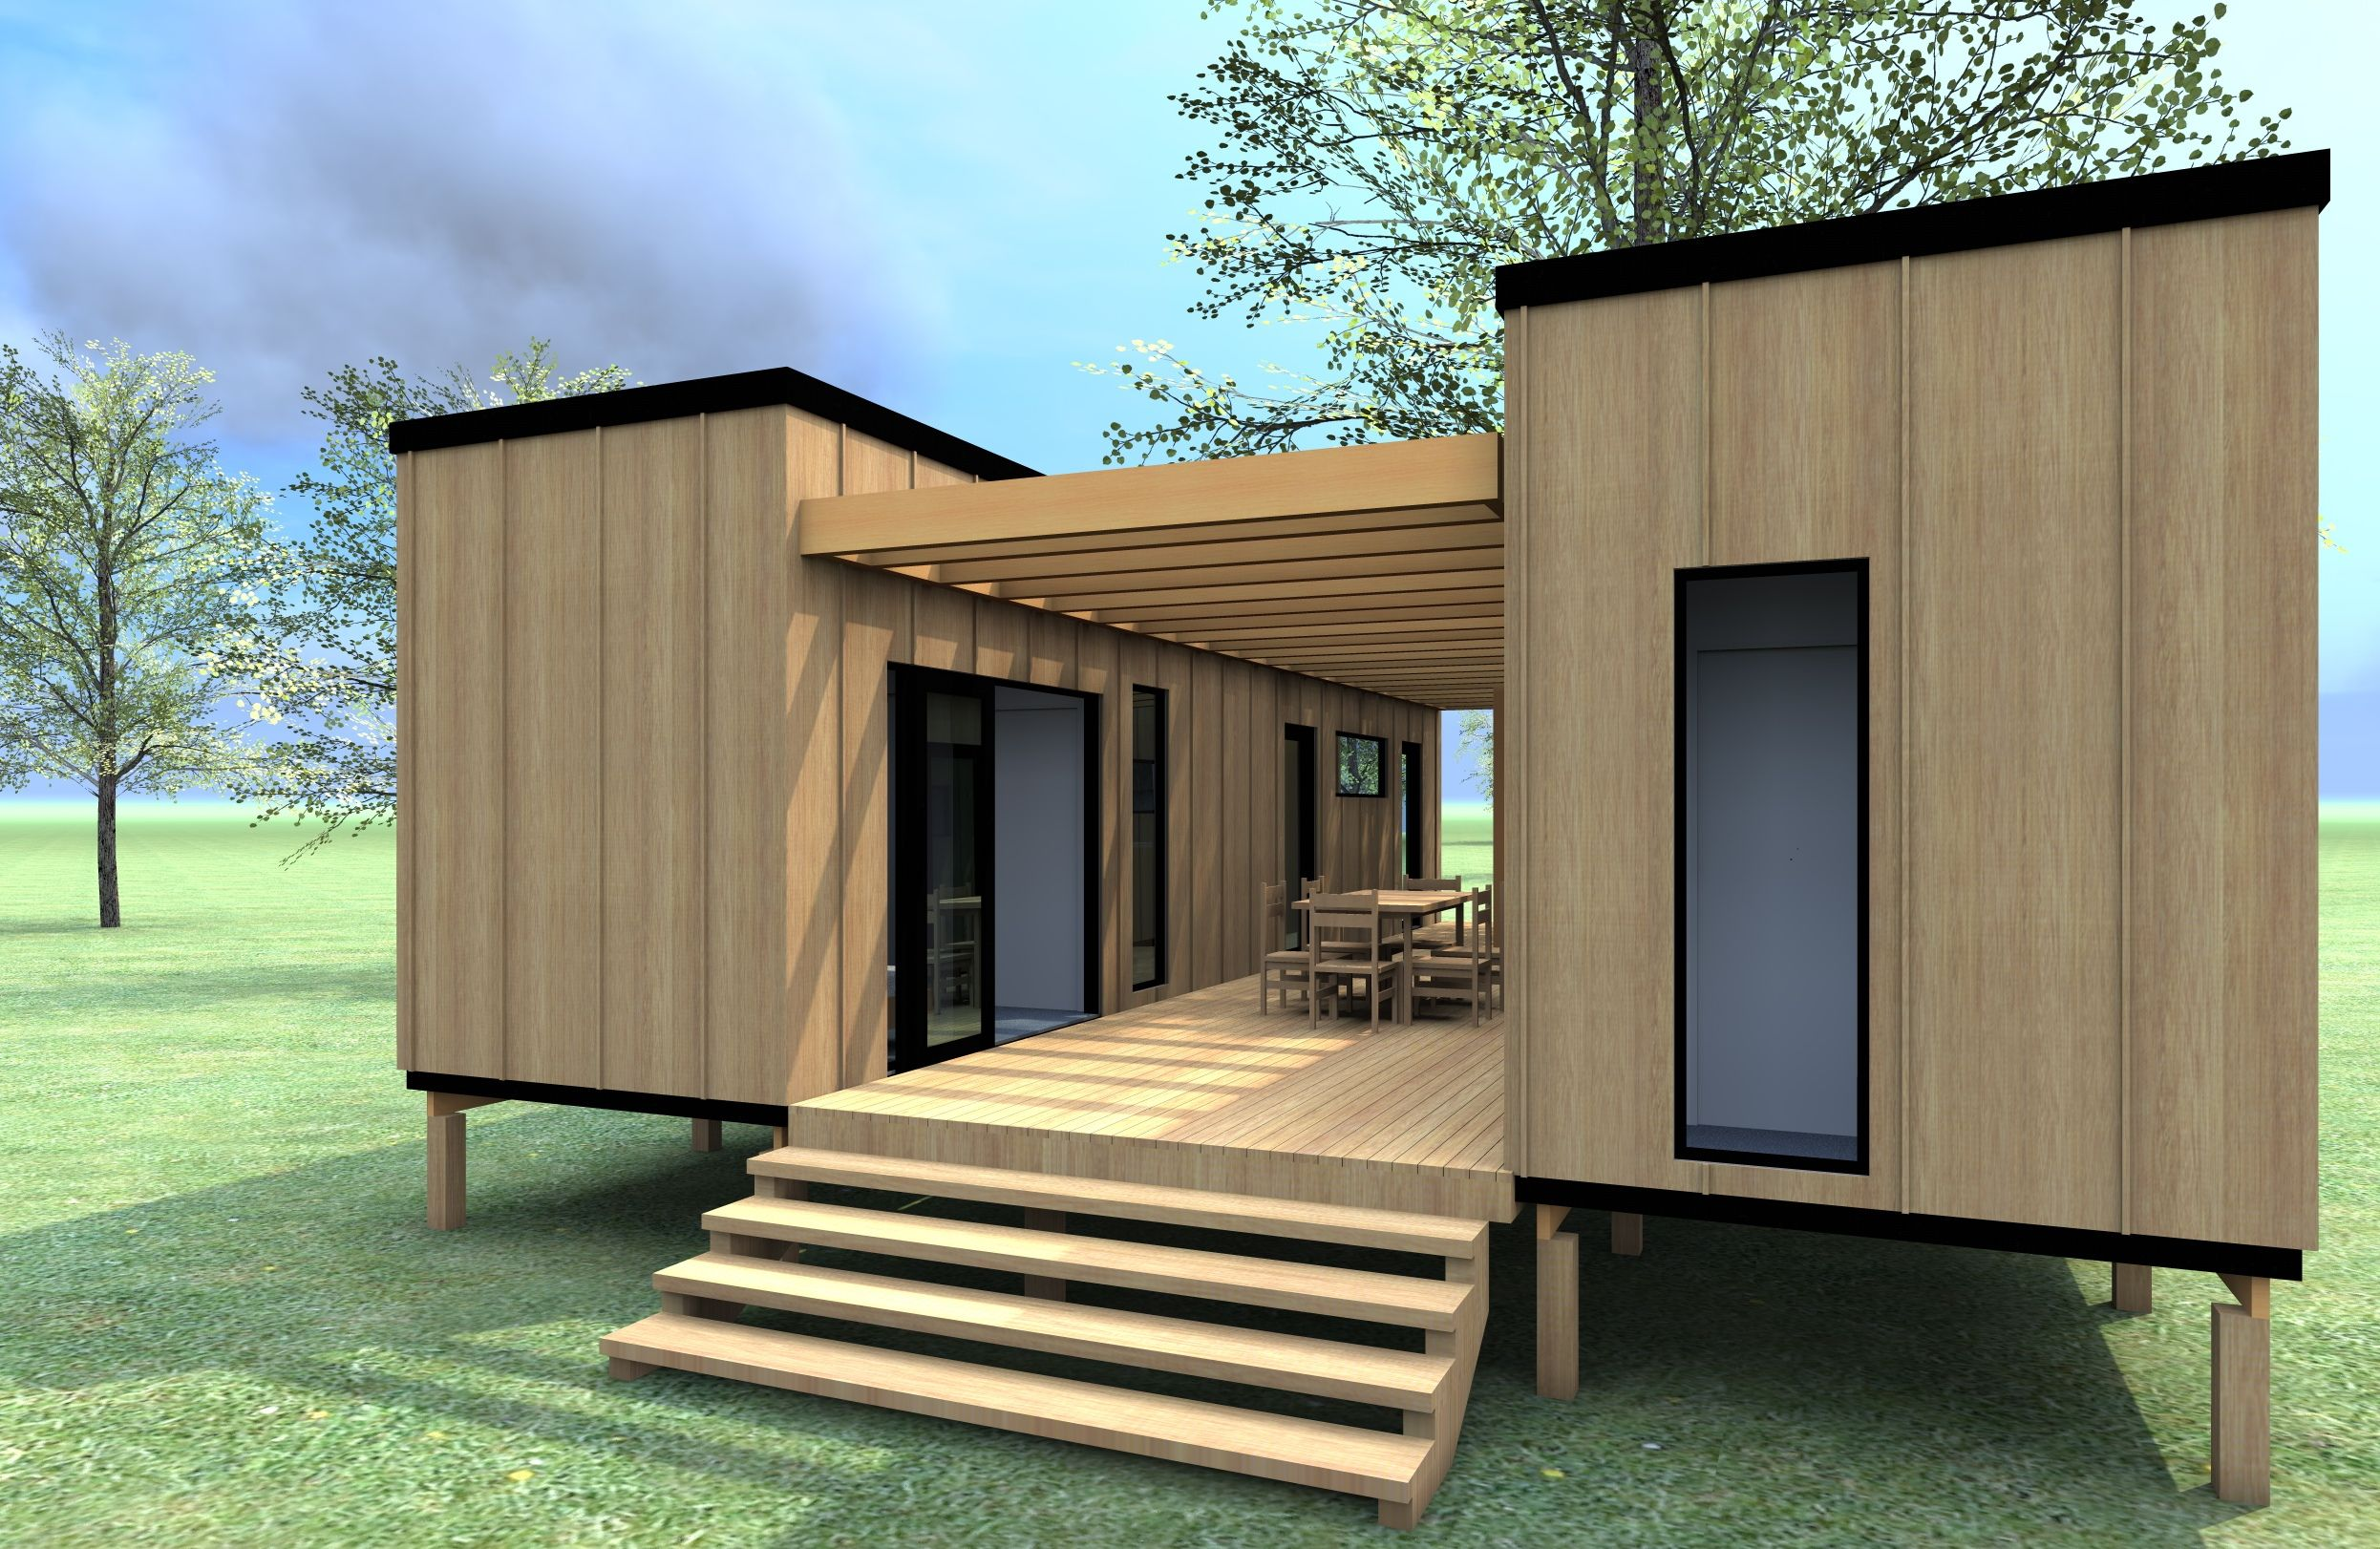 Container Home Design Ideas diy used cargo homes shipping container house plans Trinidad By Cubular Container Buildings Tiny House Living